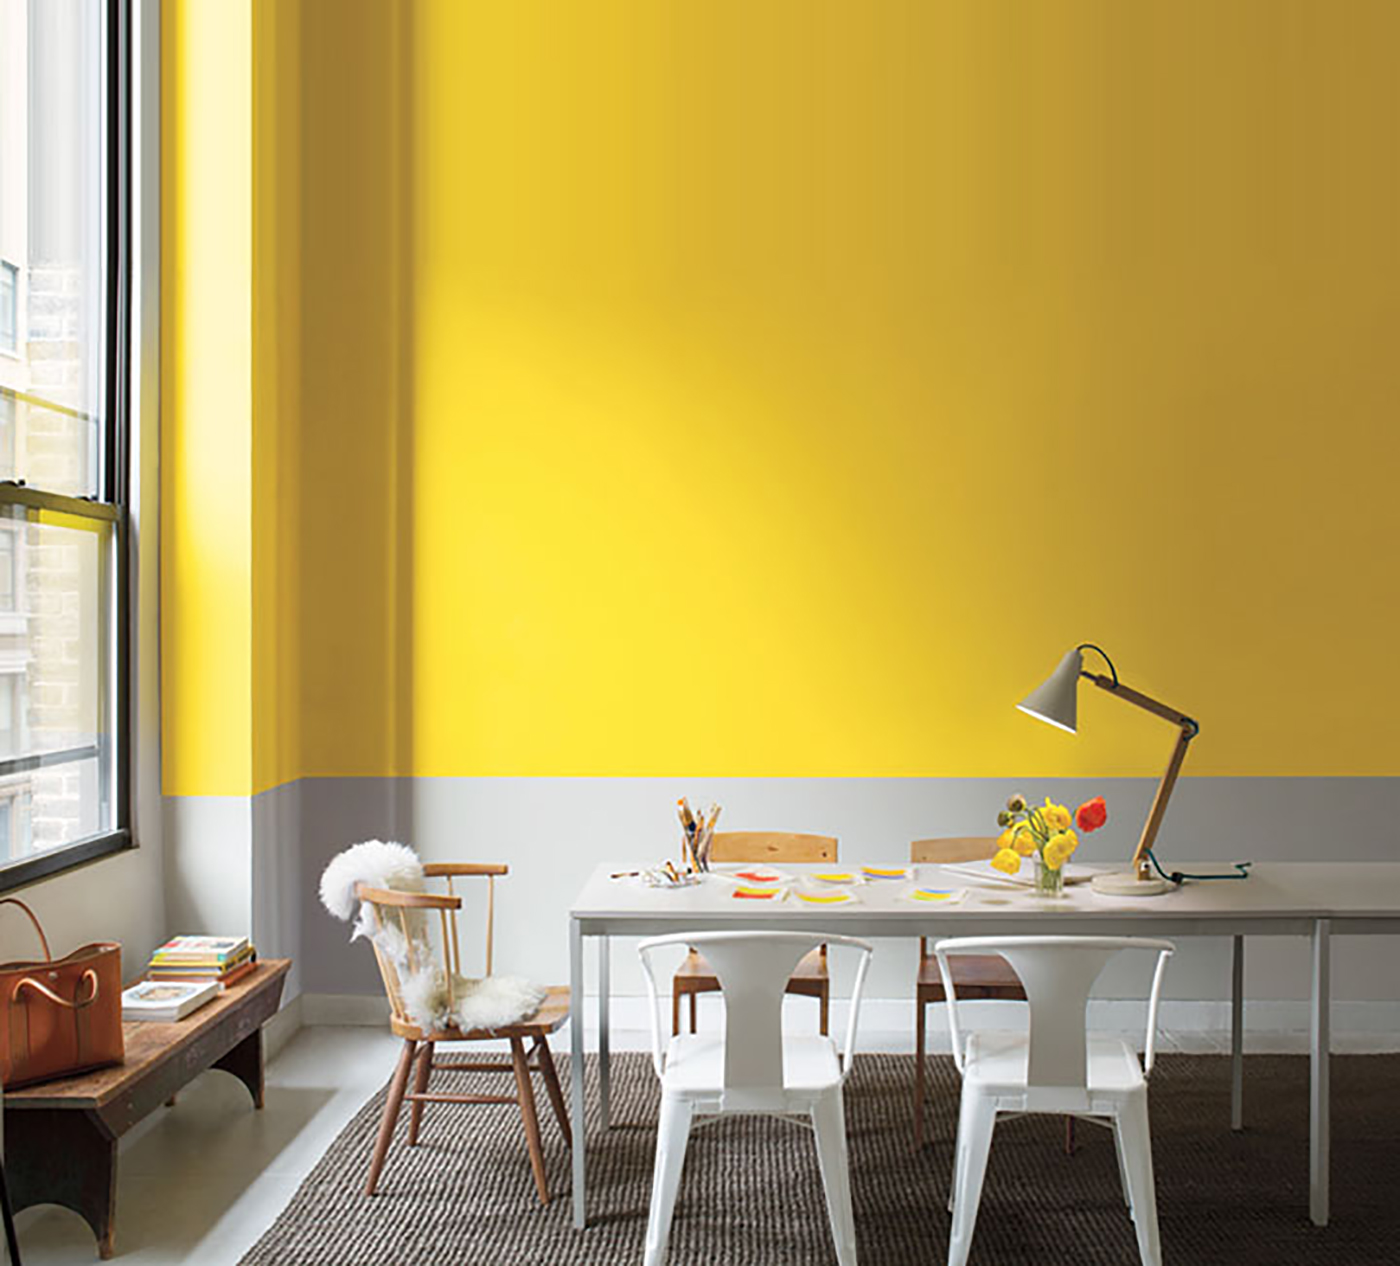 Rent a quart paint program at debsan boston design guide for Benjamin moore paint program